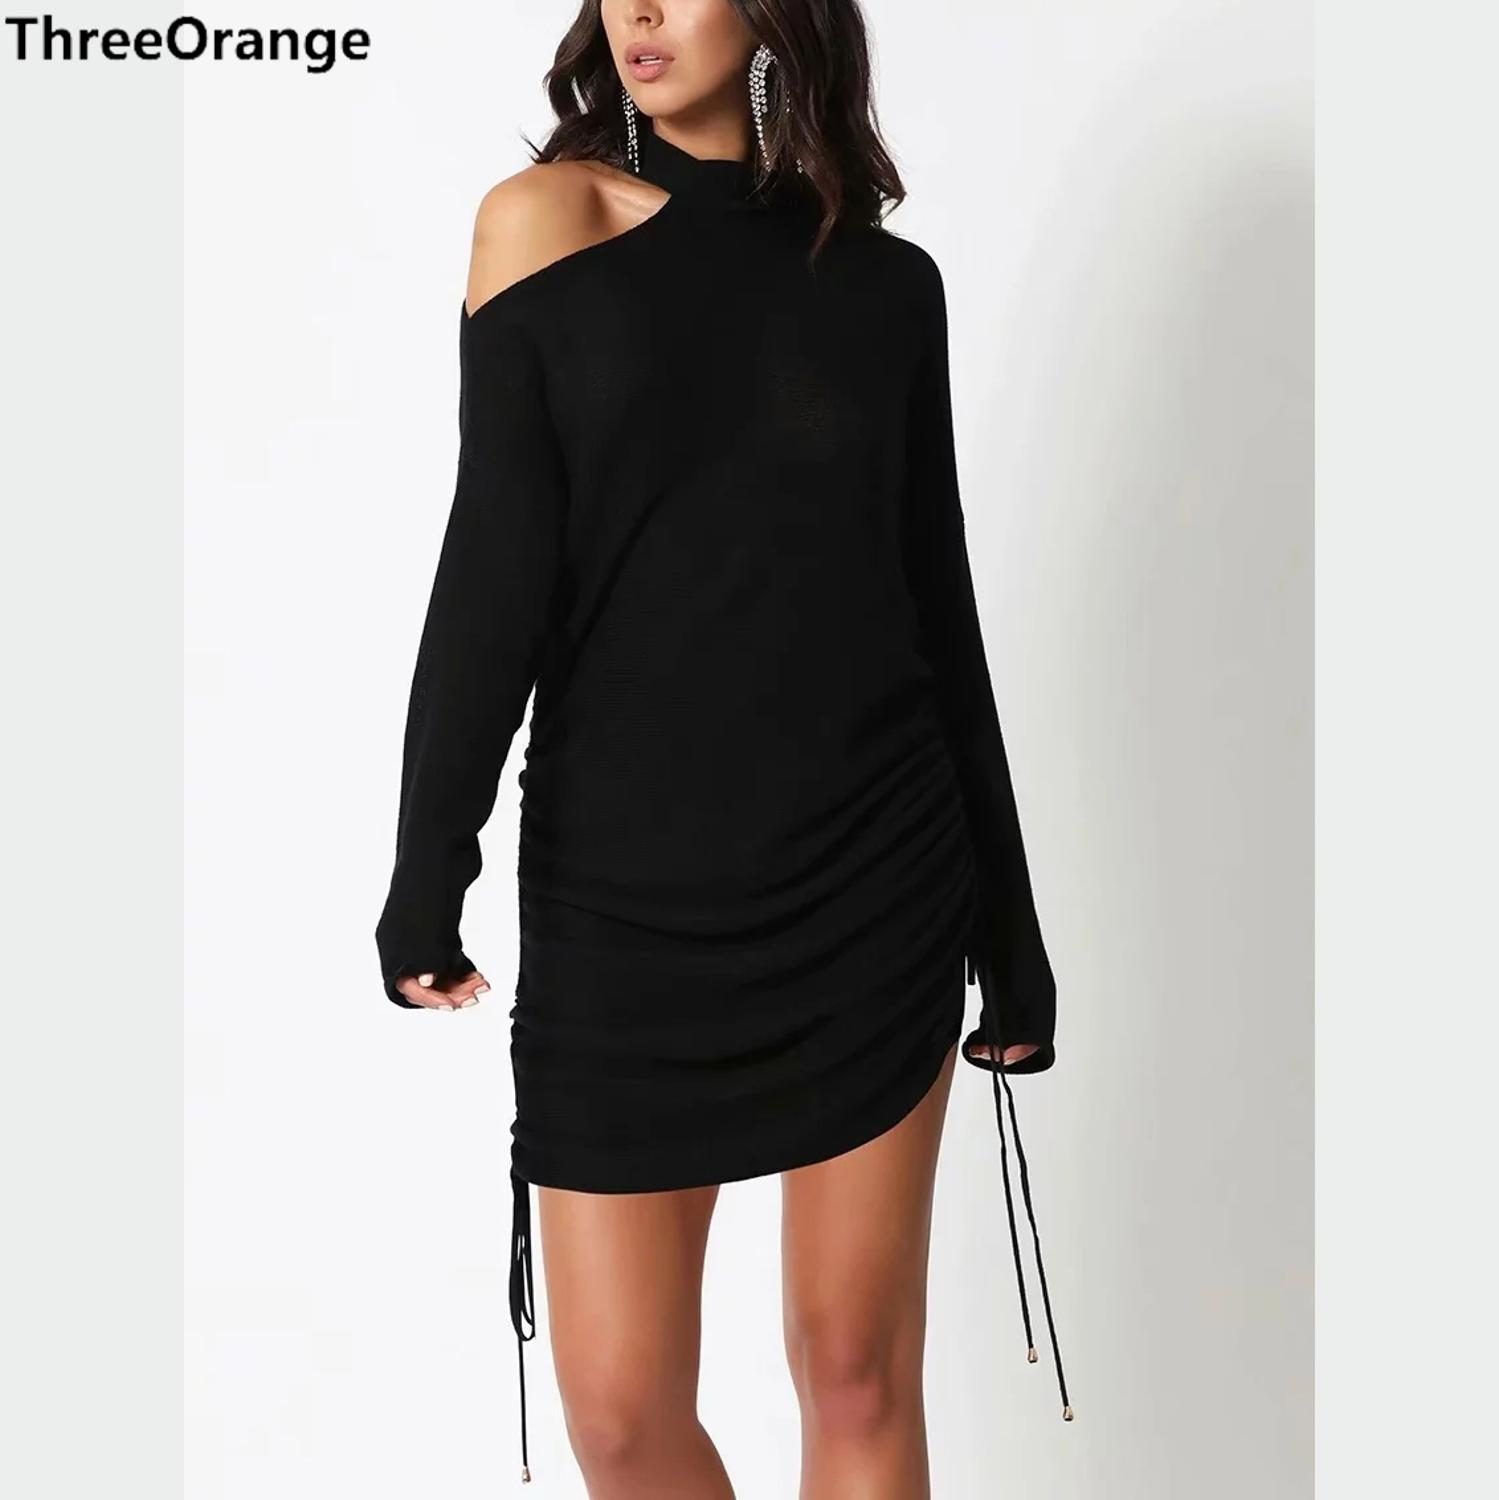 women <font><b>dress</b></font> black Drawstring slim waist off shoulder Chic lady <font><b>sexy</b></font> <font><b>hot</b></font> mini <font><b>dress</b></font> woman clothes image